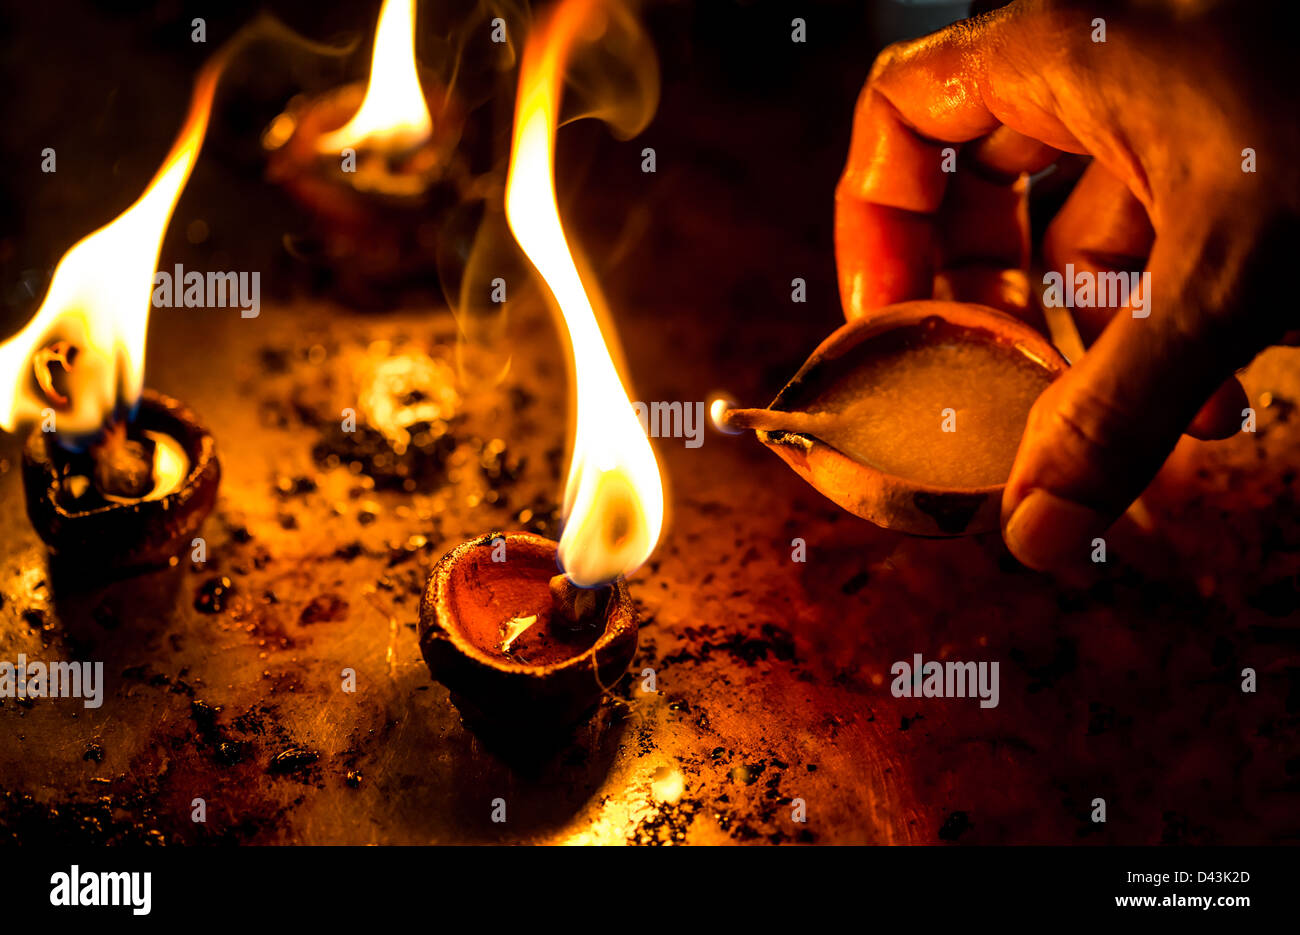 Burning candles in the Indian temple. Diwali – the festival of lights. - Stock Image